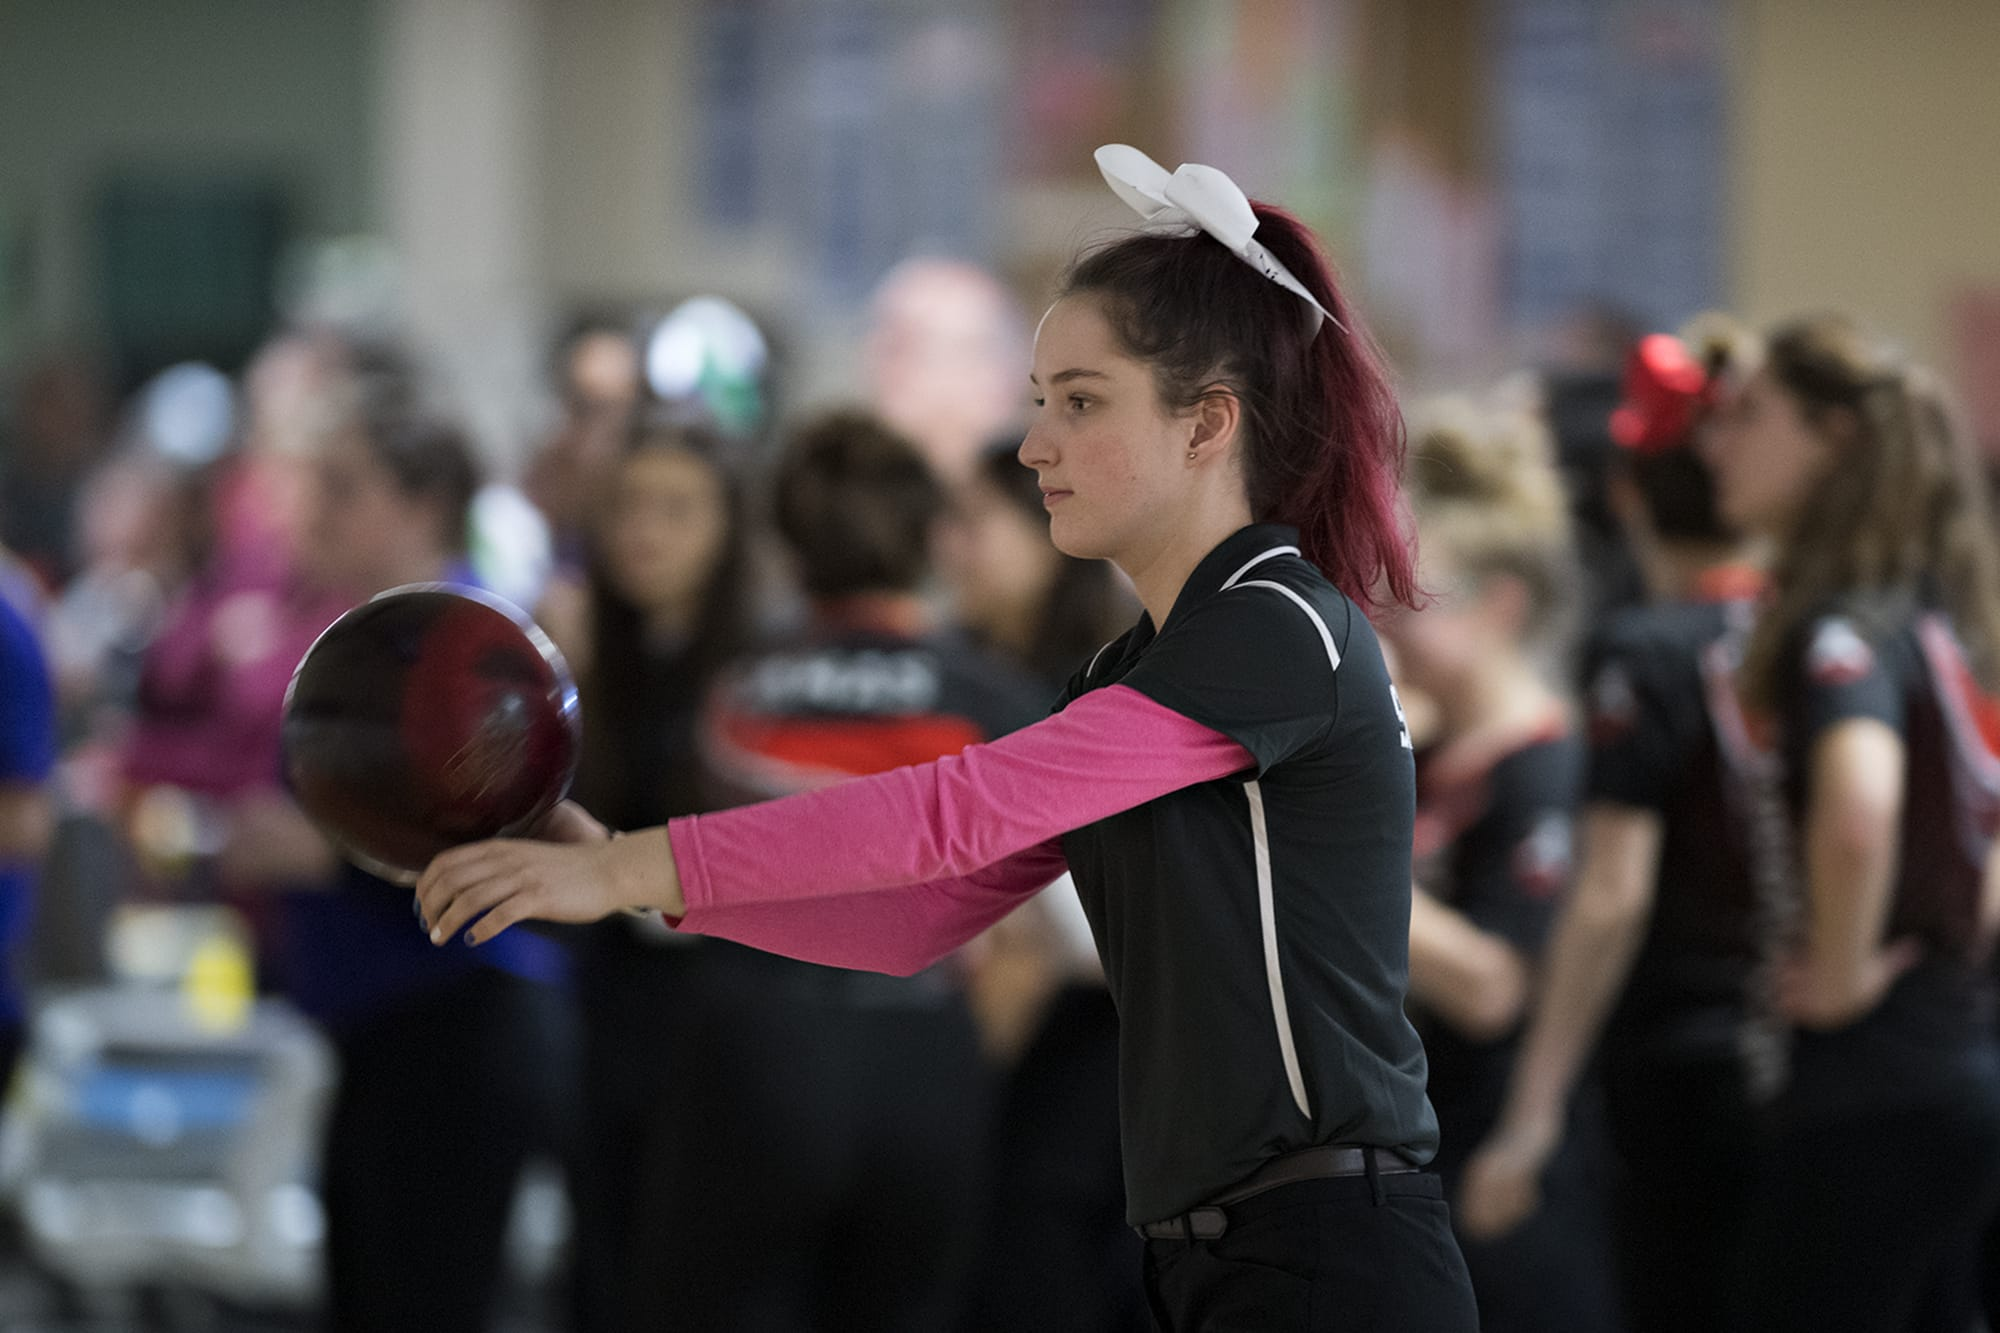 Skyview's Nicole Hayes steps up to the approach during girls district bowling action at Crosley Lanes on Friday afternoon, Jan. 31, 2020. (Amanda Cowan/The Columbian)